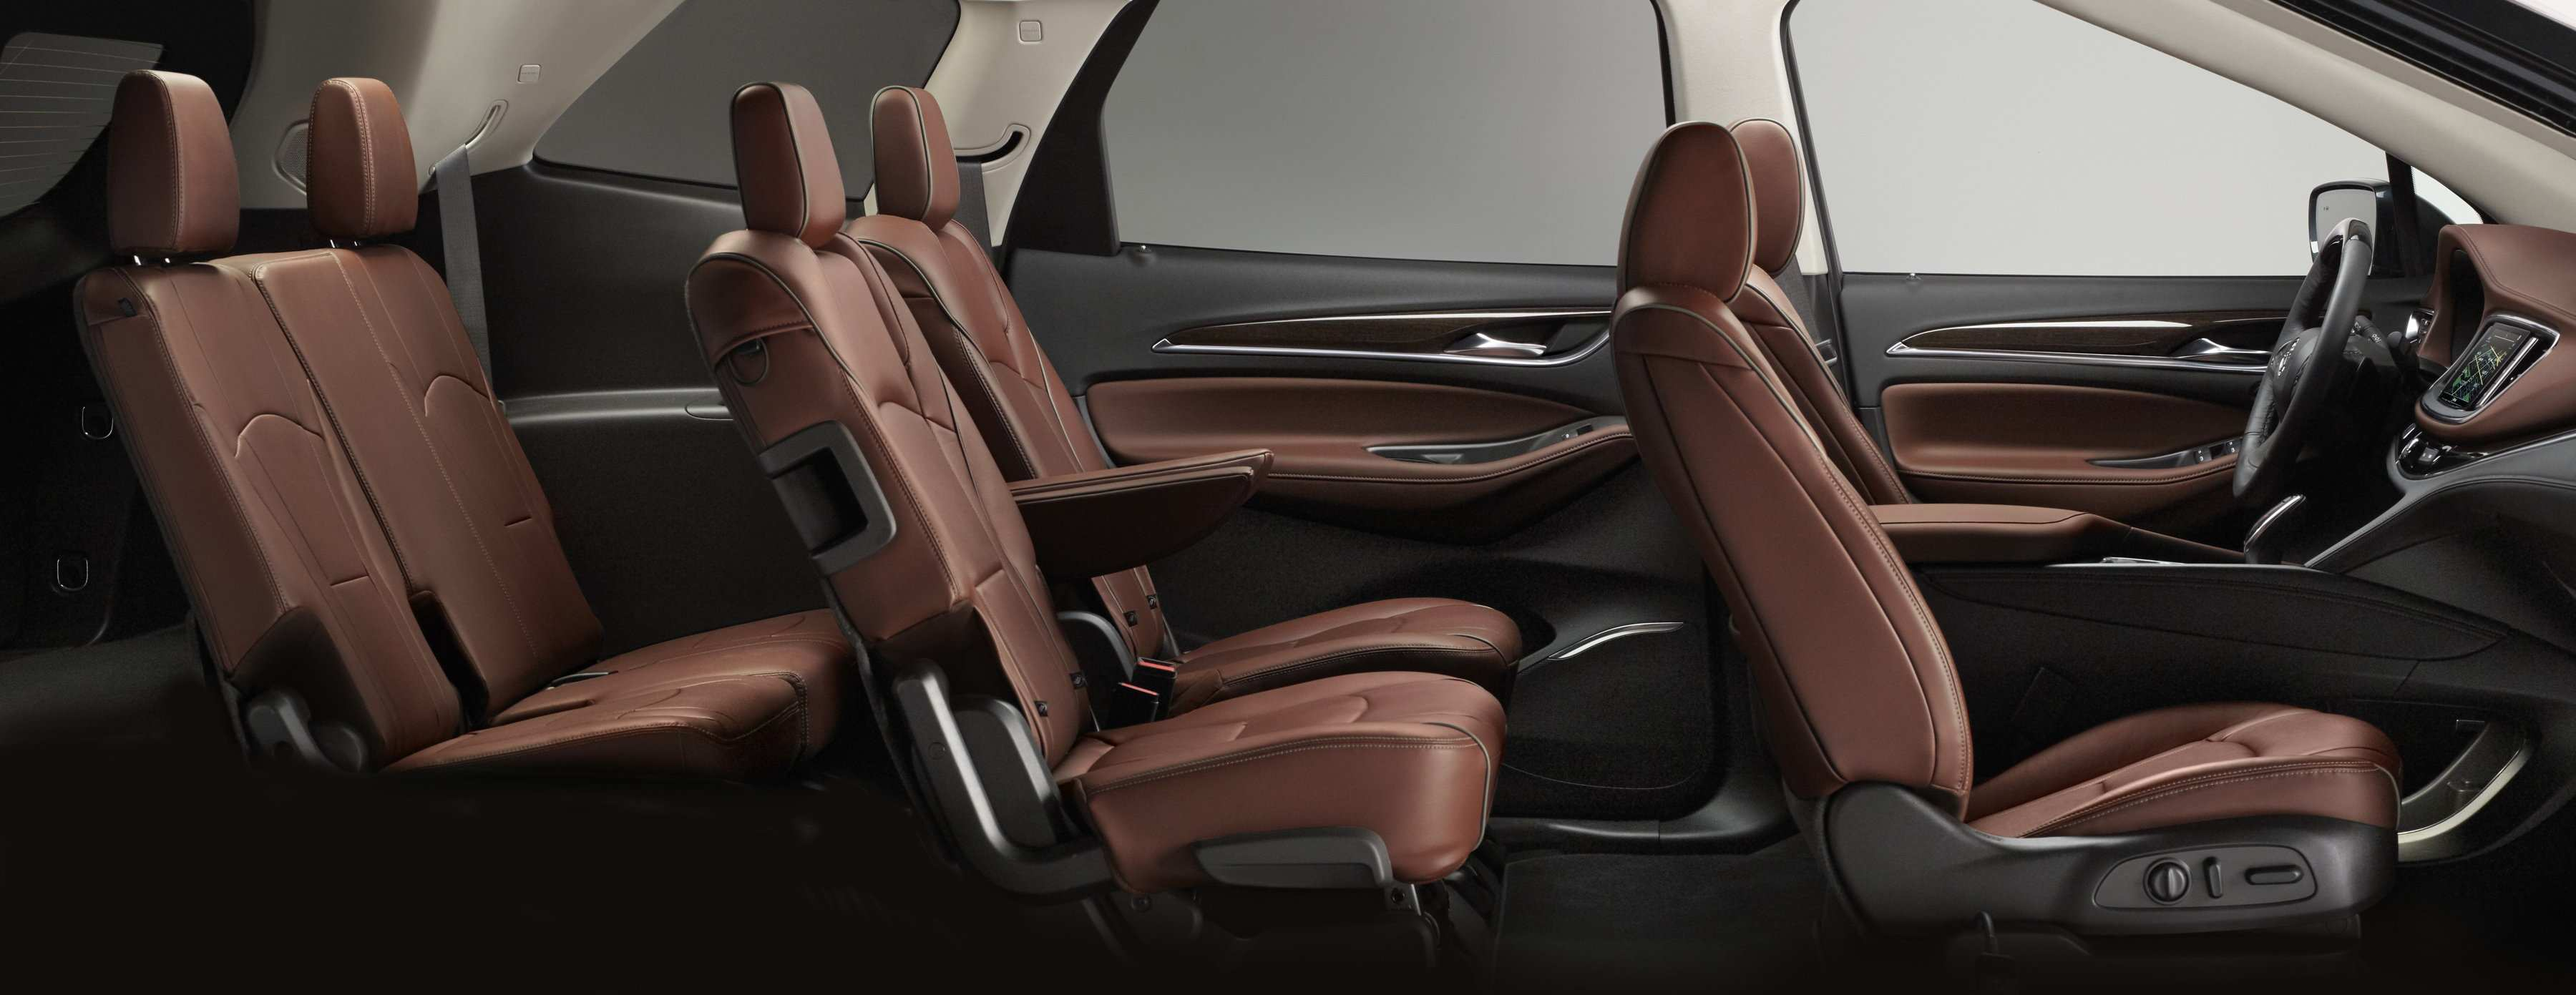 61 The Best 2020 Buick Enclave Interior Interior